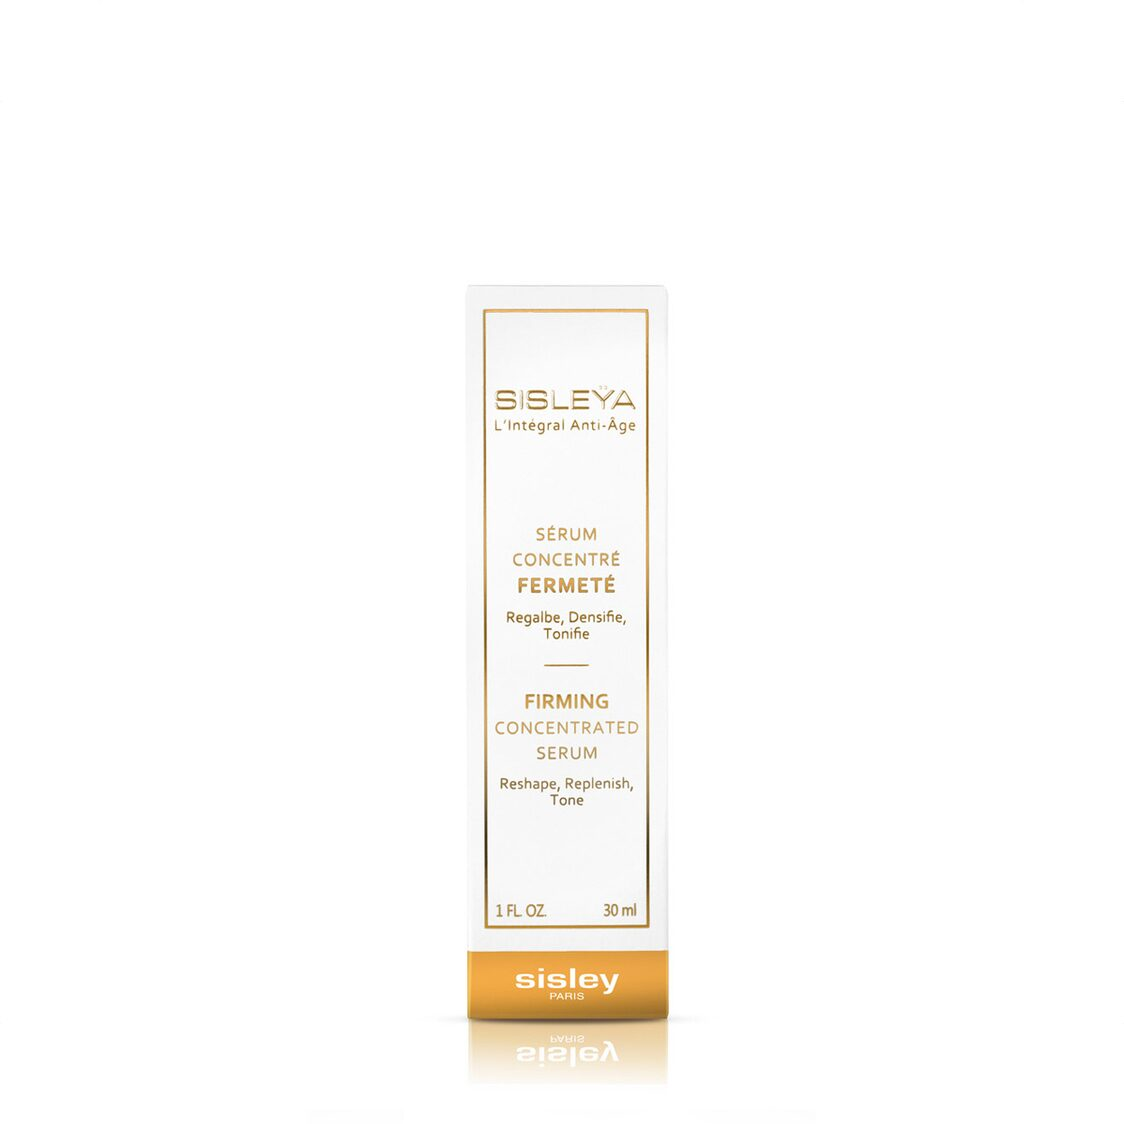 Sisley Sislea LIntgral Anti-ge Firming Concentrated Serum